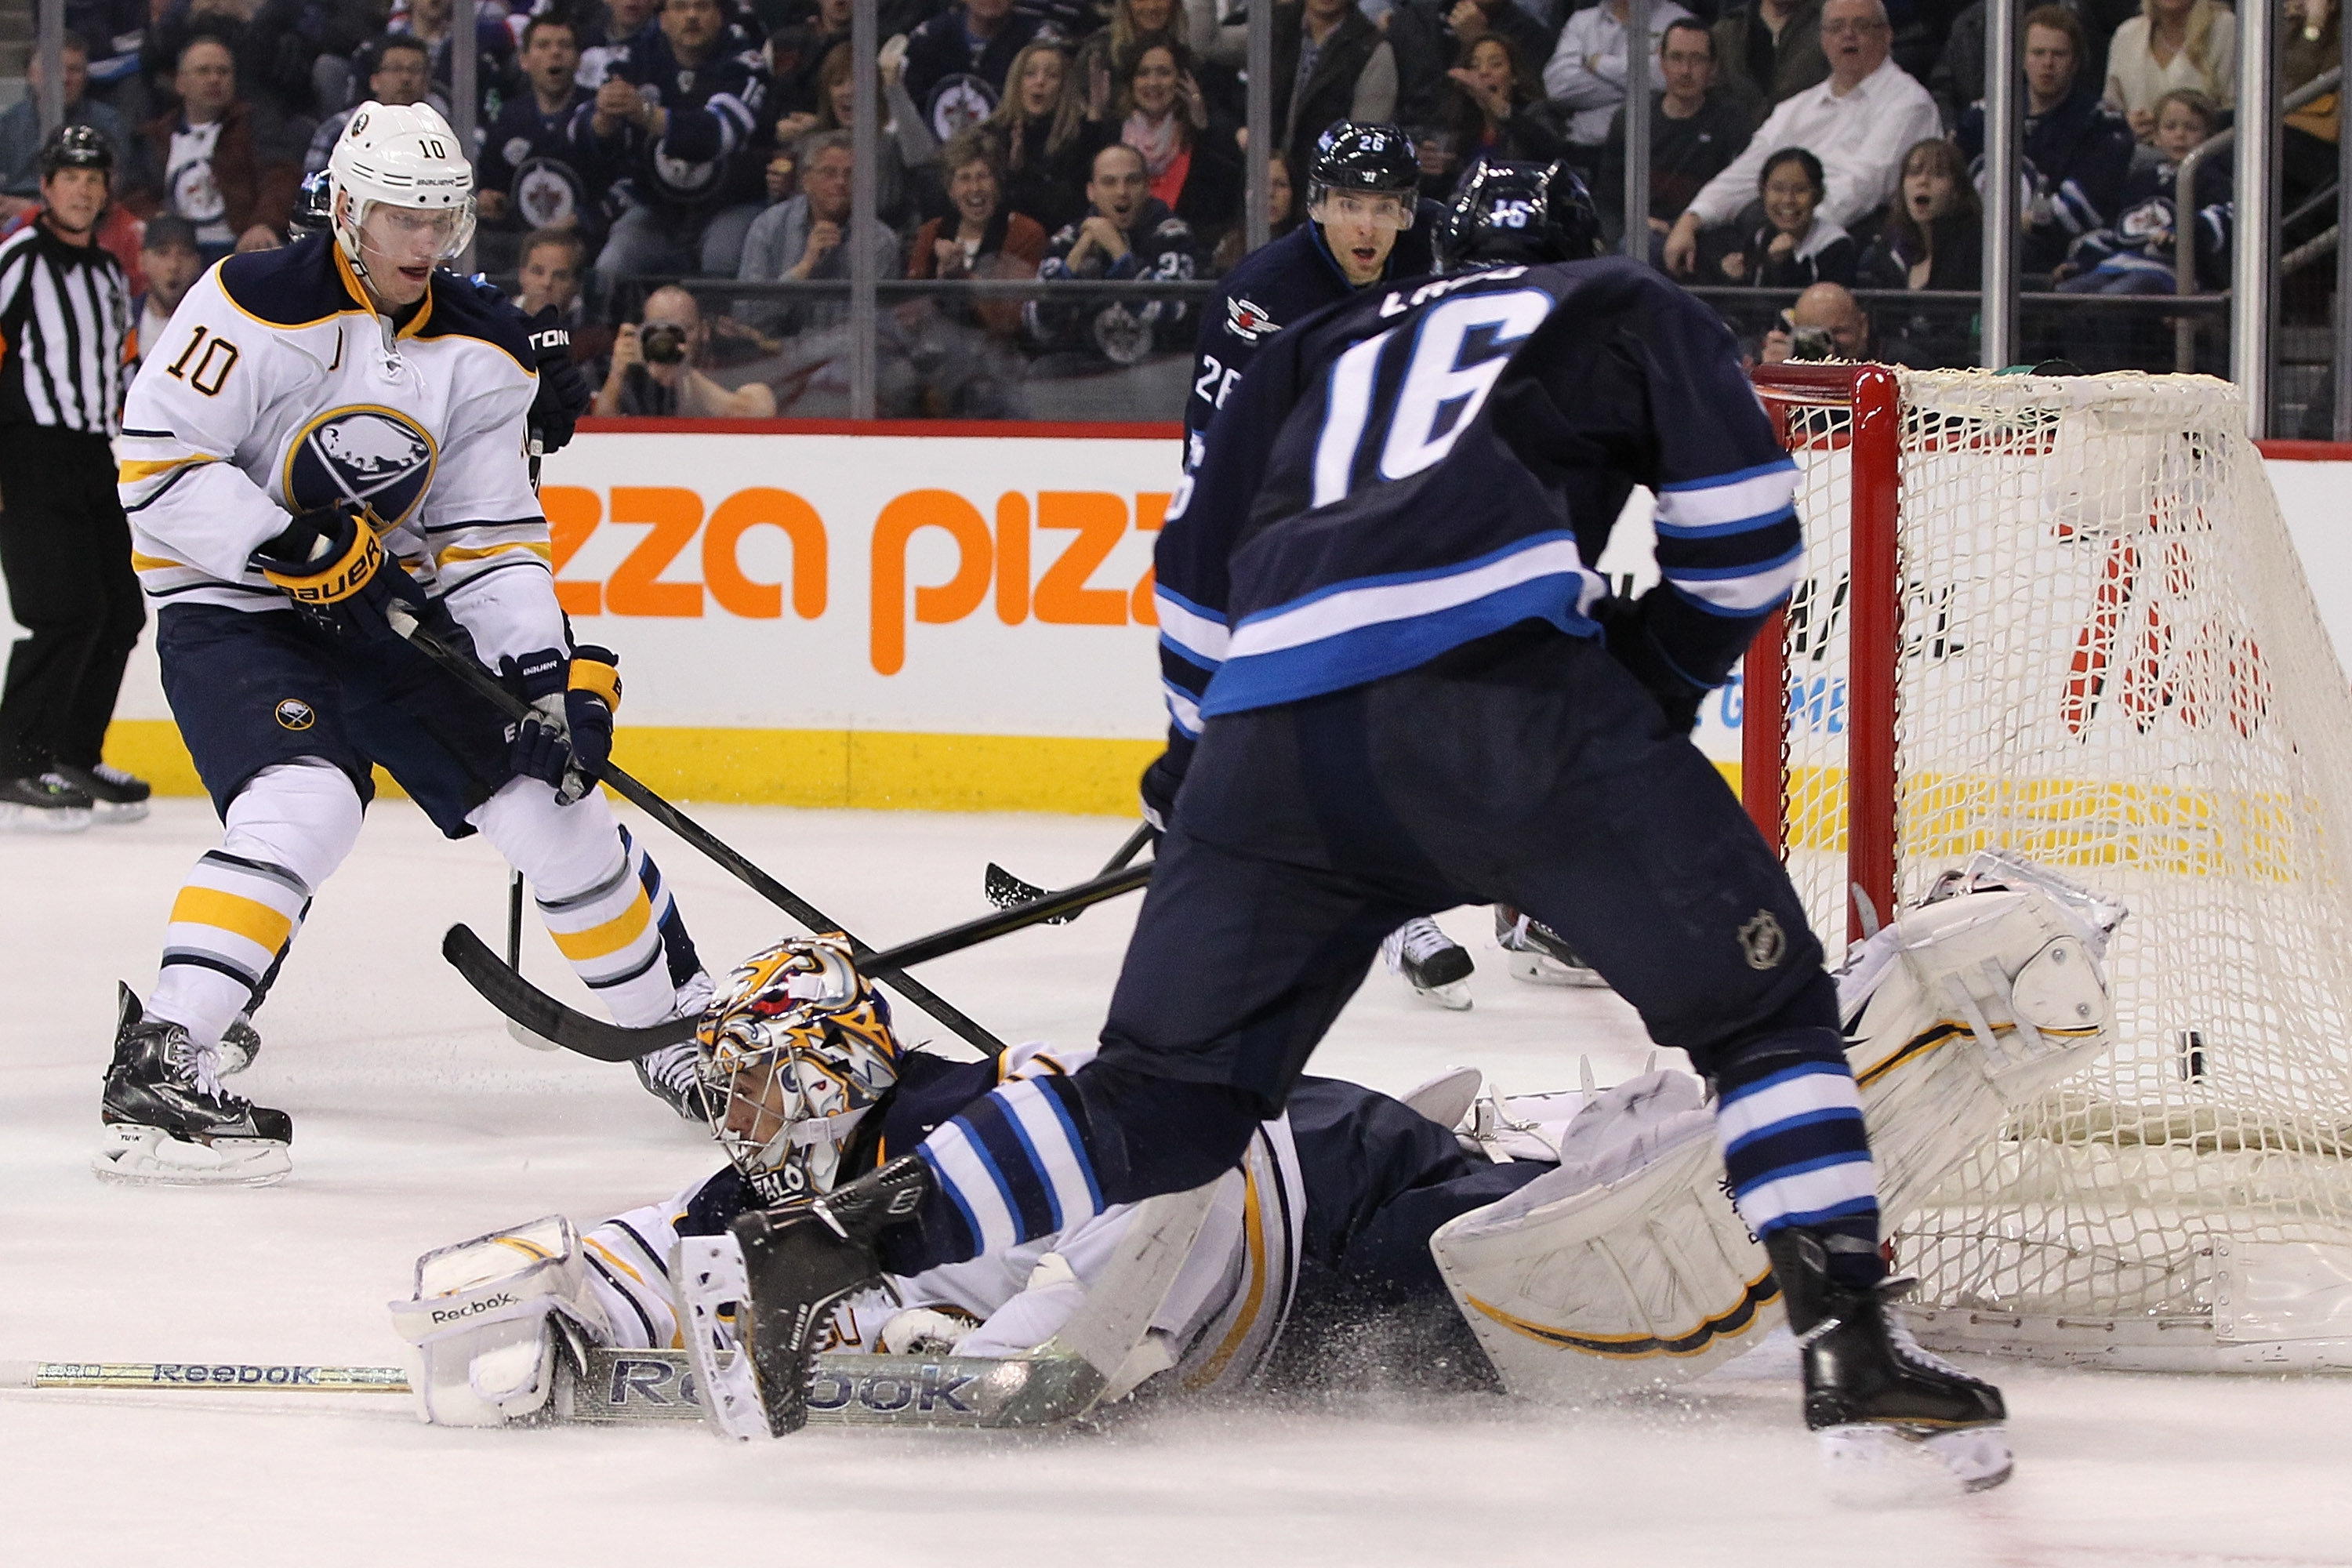 Goaltender Ryan Miller of the Sabres sprawls on the ice as Winnipeg's Andrew Ladd (16) scores in the second period.